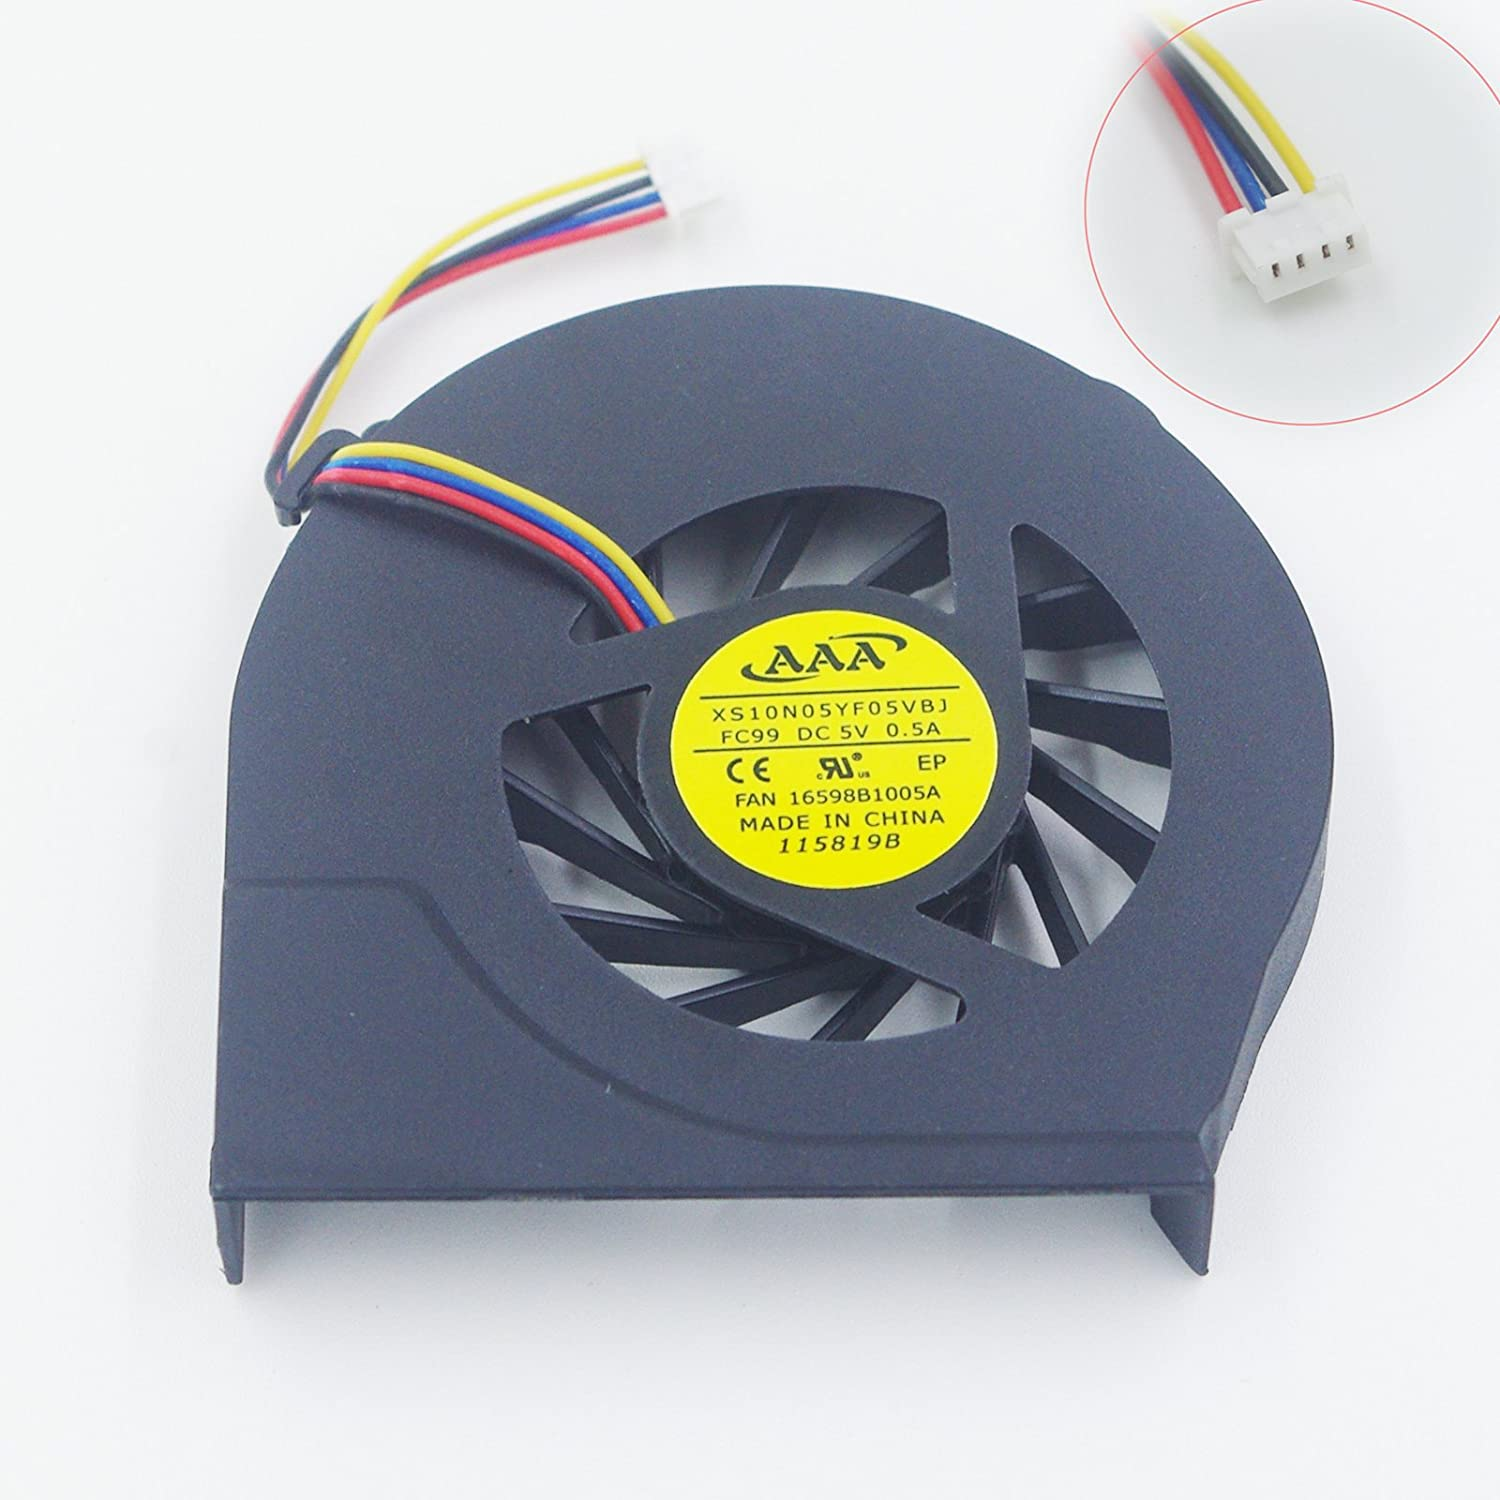 New Laptop Replacement CPU Fan for HP G4-2000 G6-2000 G7-2000 Series